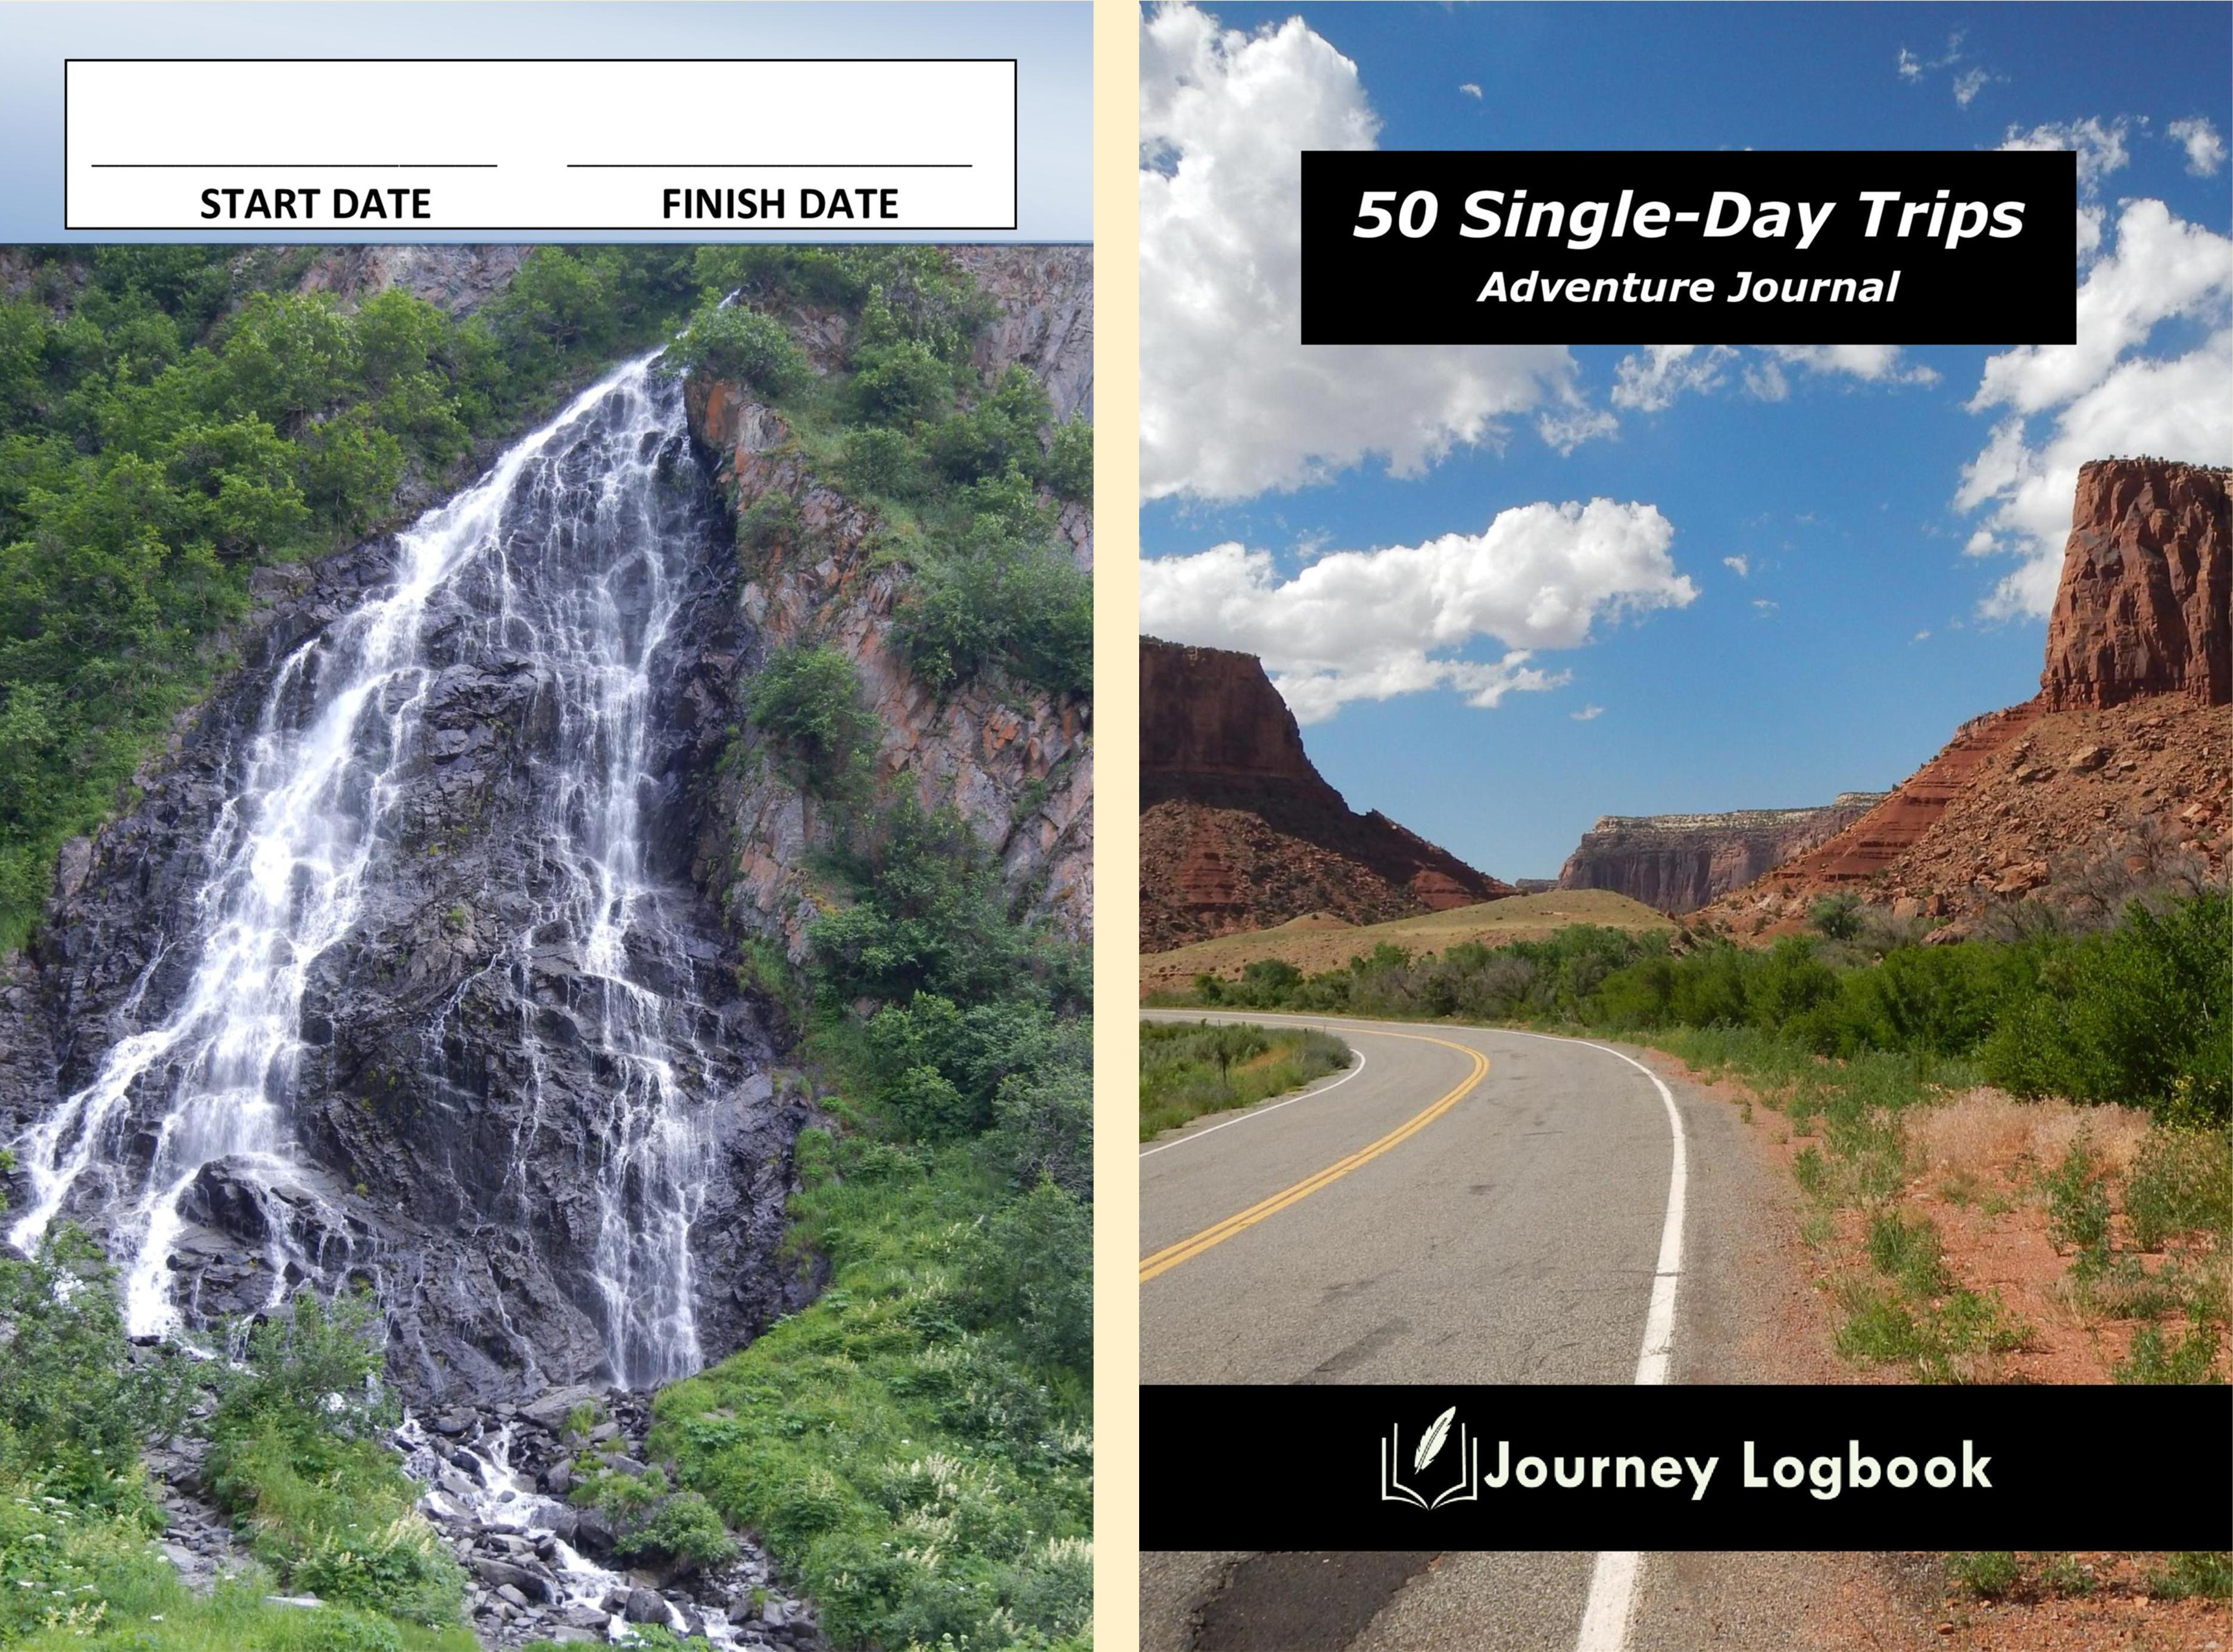 50 Single-Day Trips Adventure Journal cover image